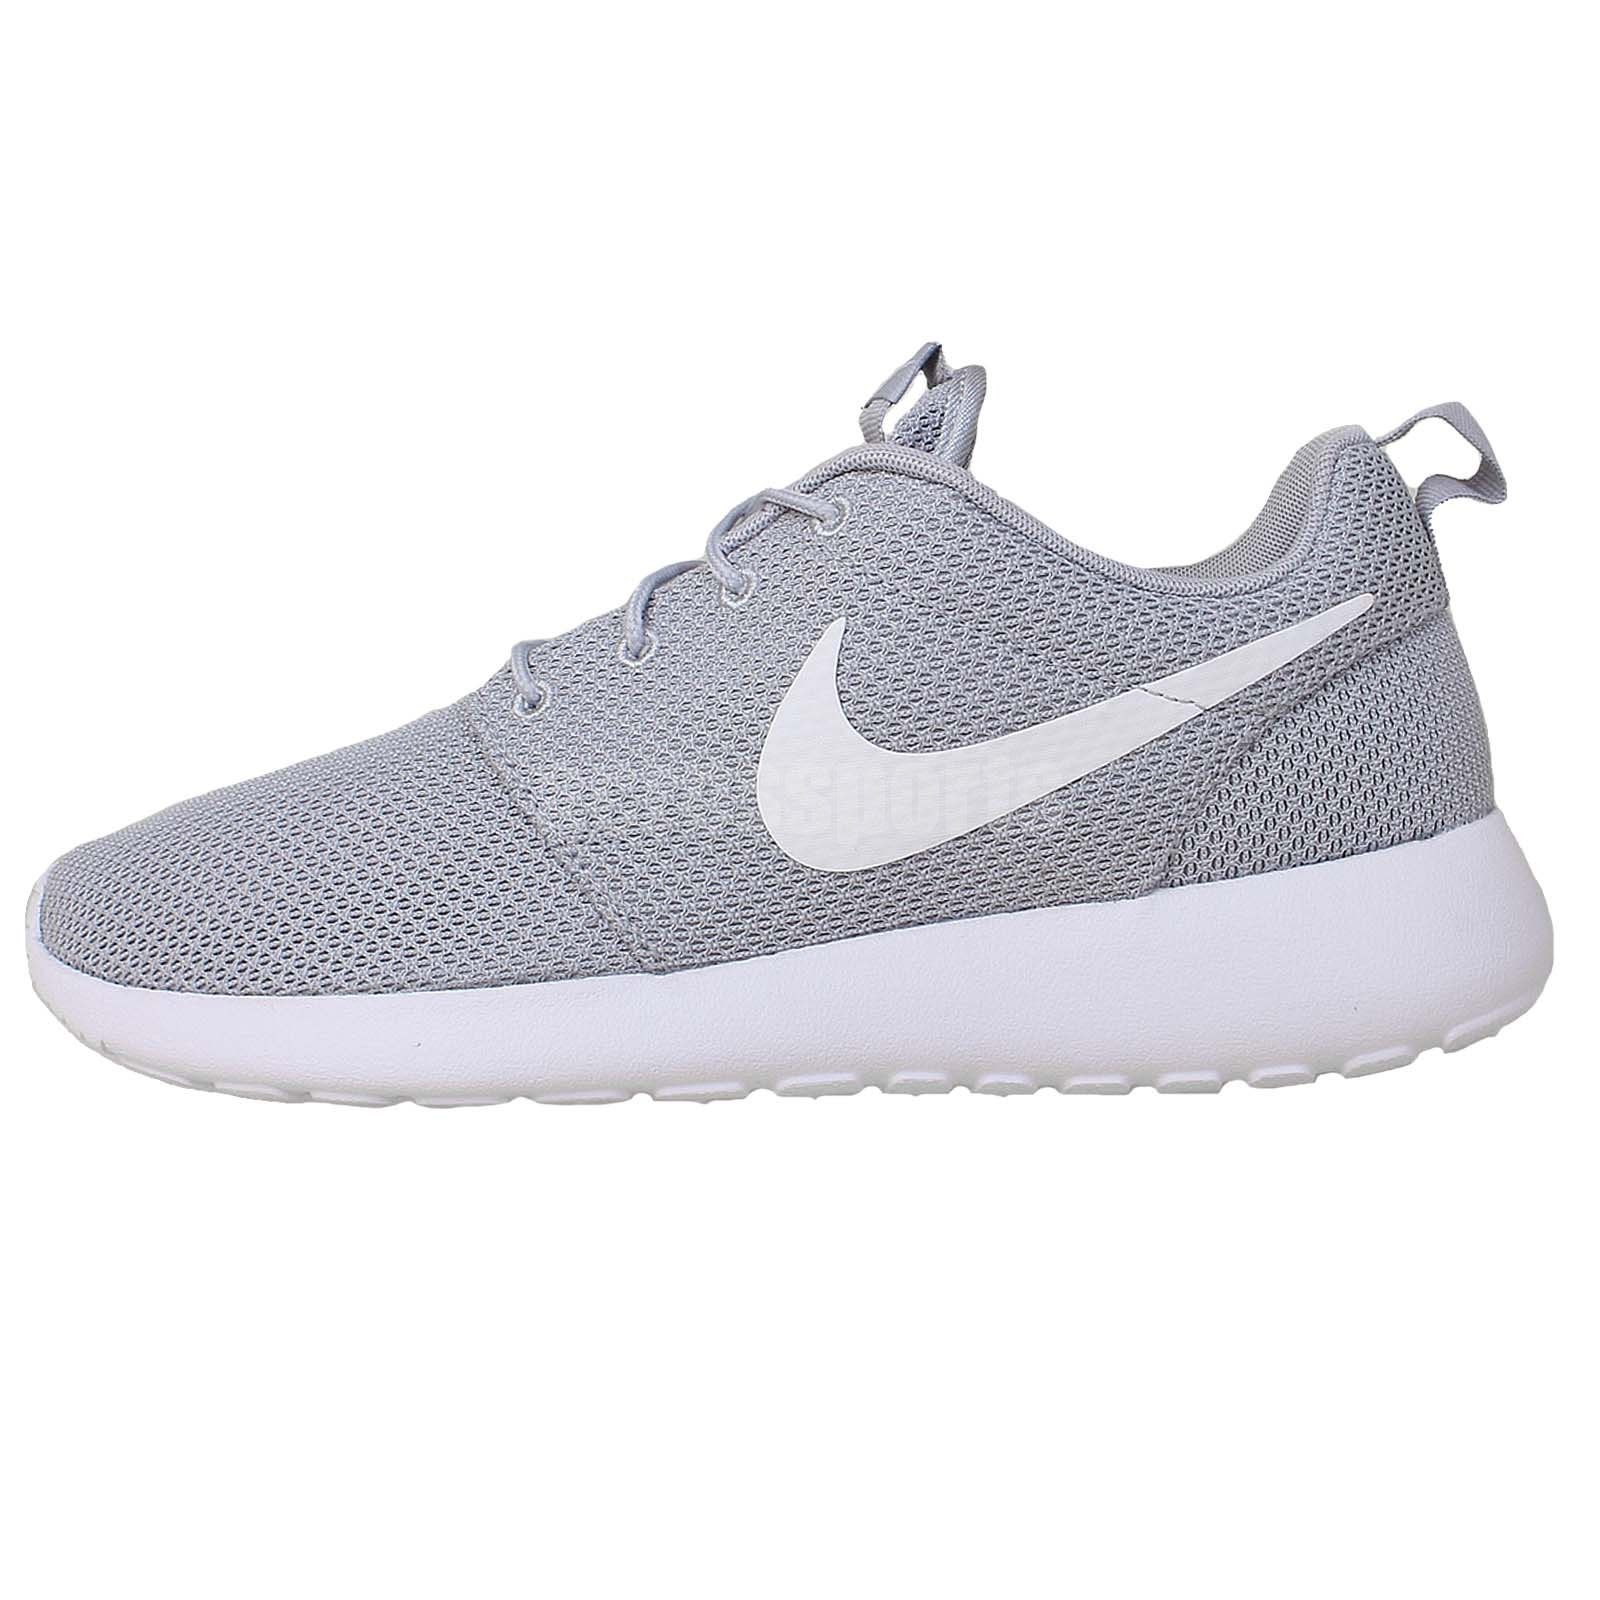 nike roshe run men's all white nursing shoes